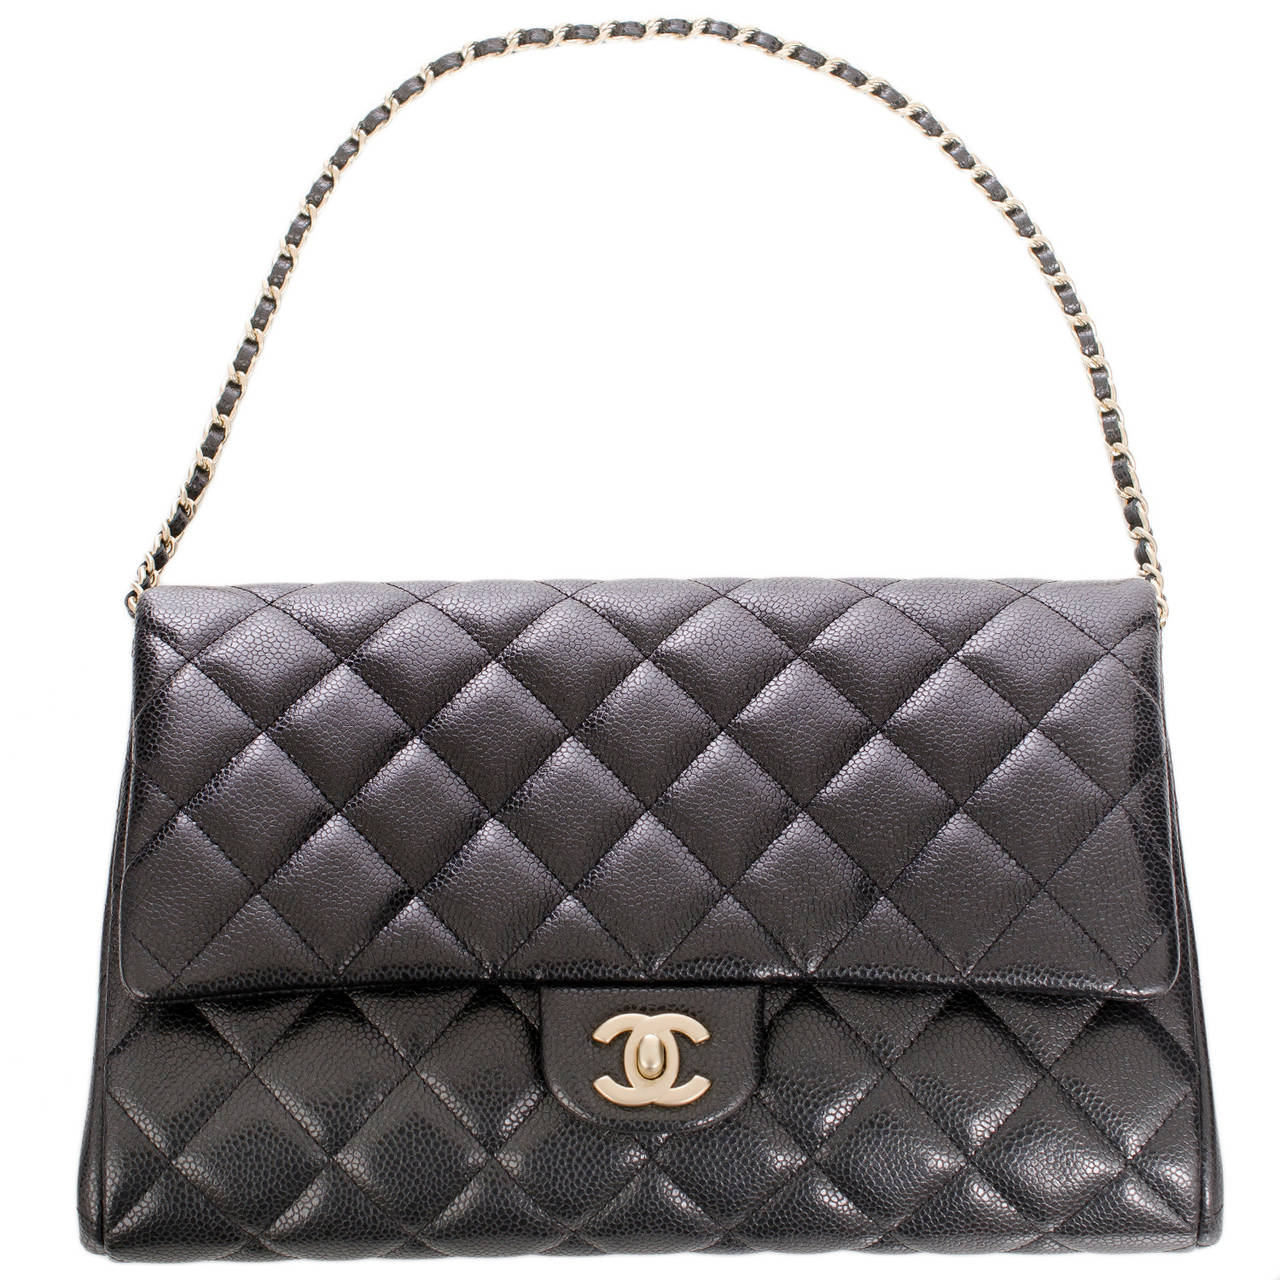 Chanel Black Quilted Caviar New Clutch With Chain For Sale 1